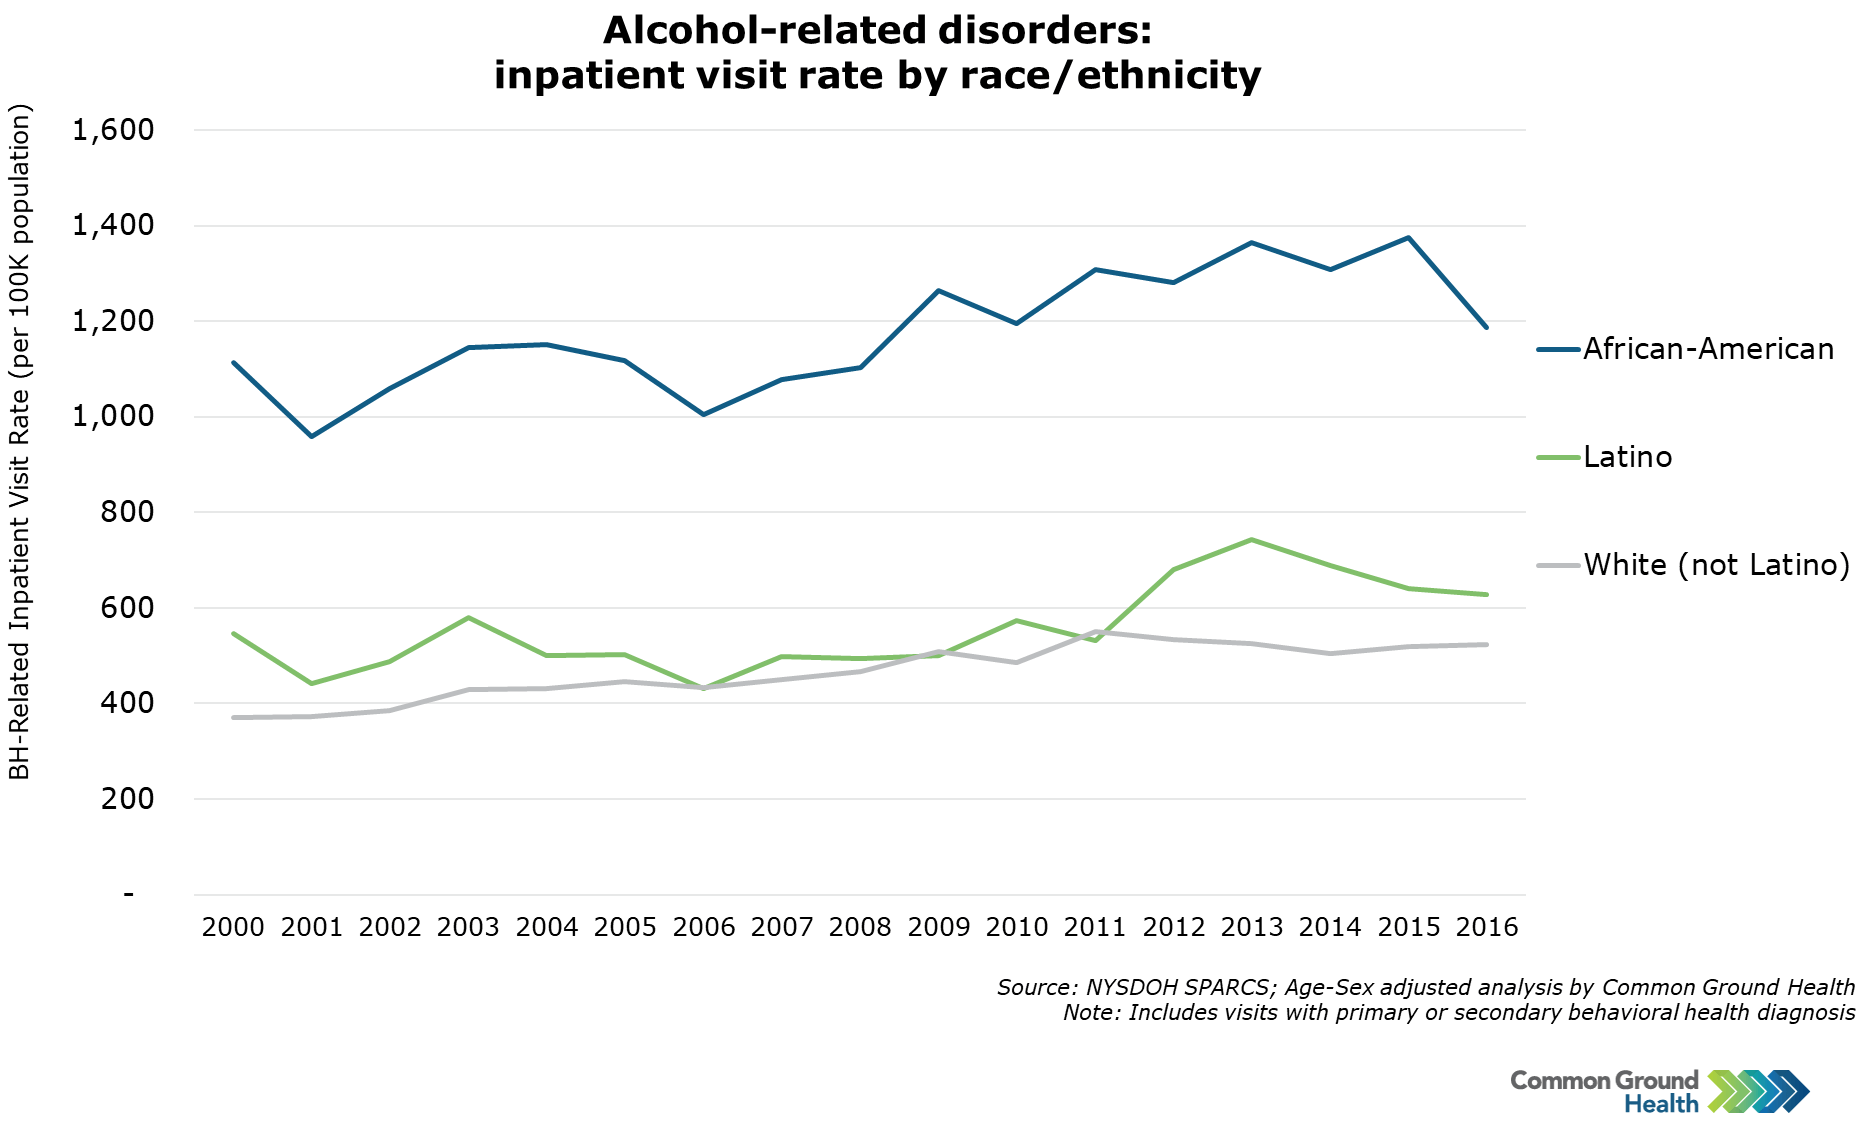 Alcohol-Related Disorders: Inpatient Visit Rate by Race/Ethnicity